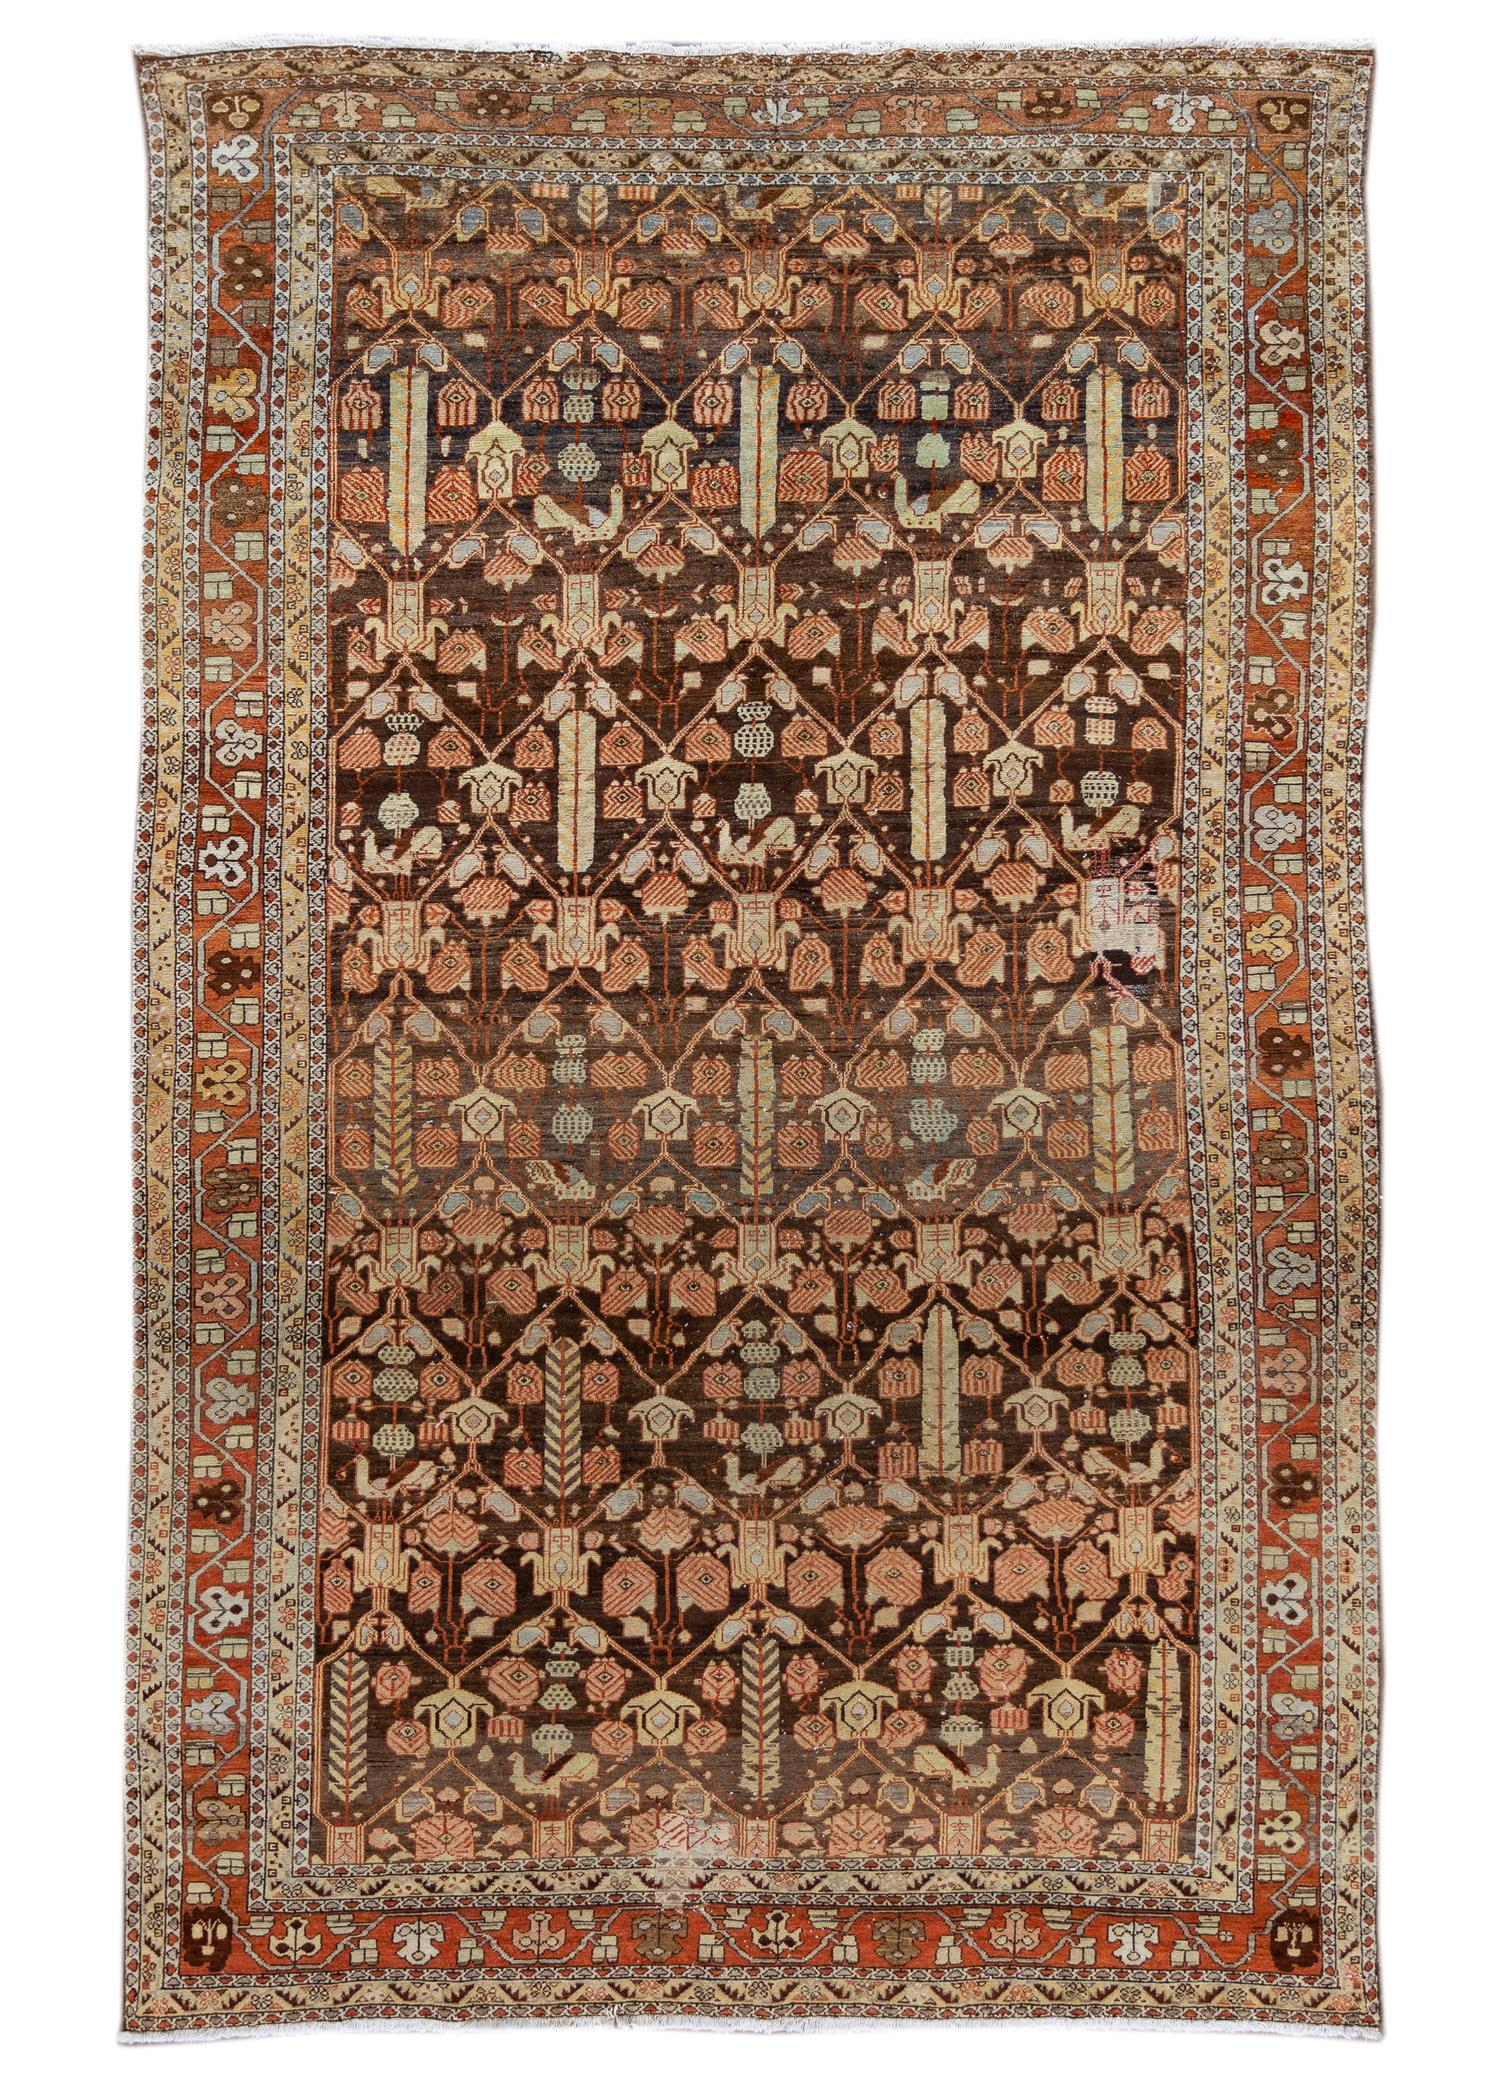 Antique Malayer Rug, #10235253, 8X12